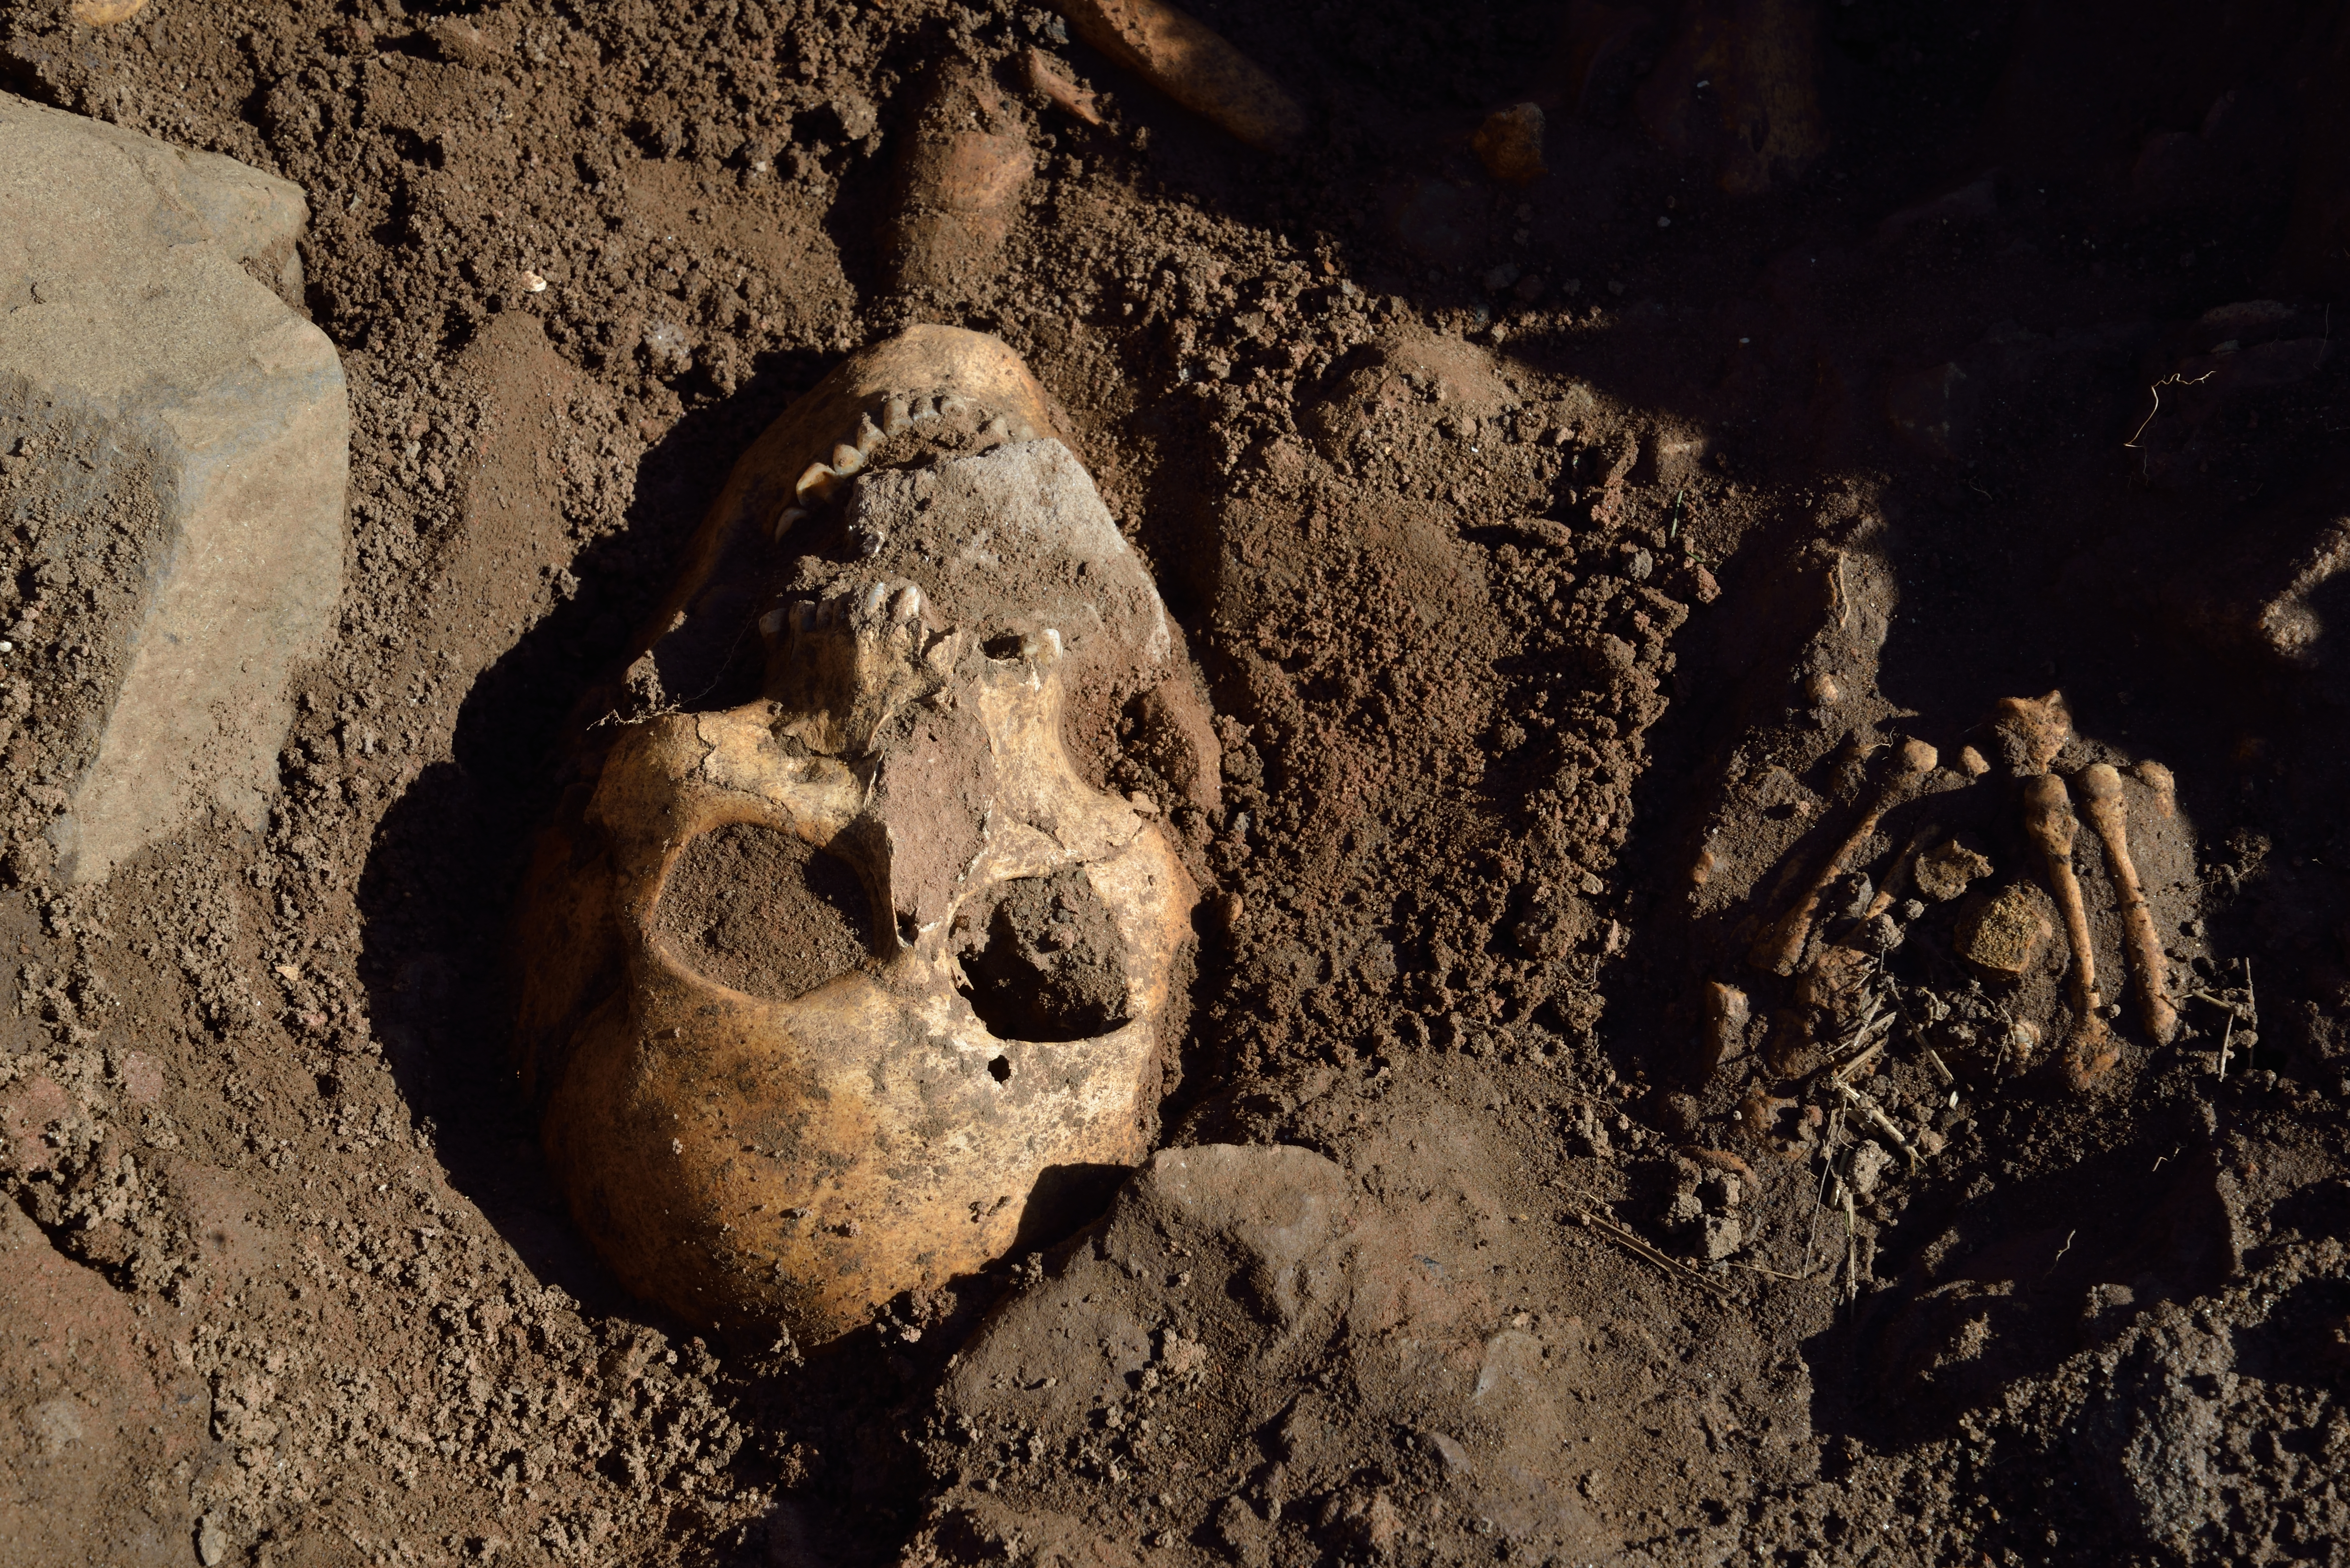 The skull of a skeleton that is being excavated. It is partially covered in soil.